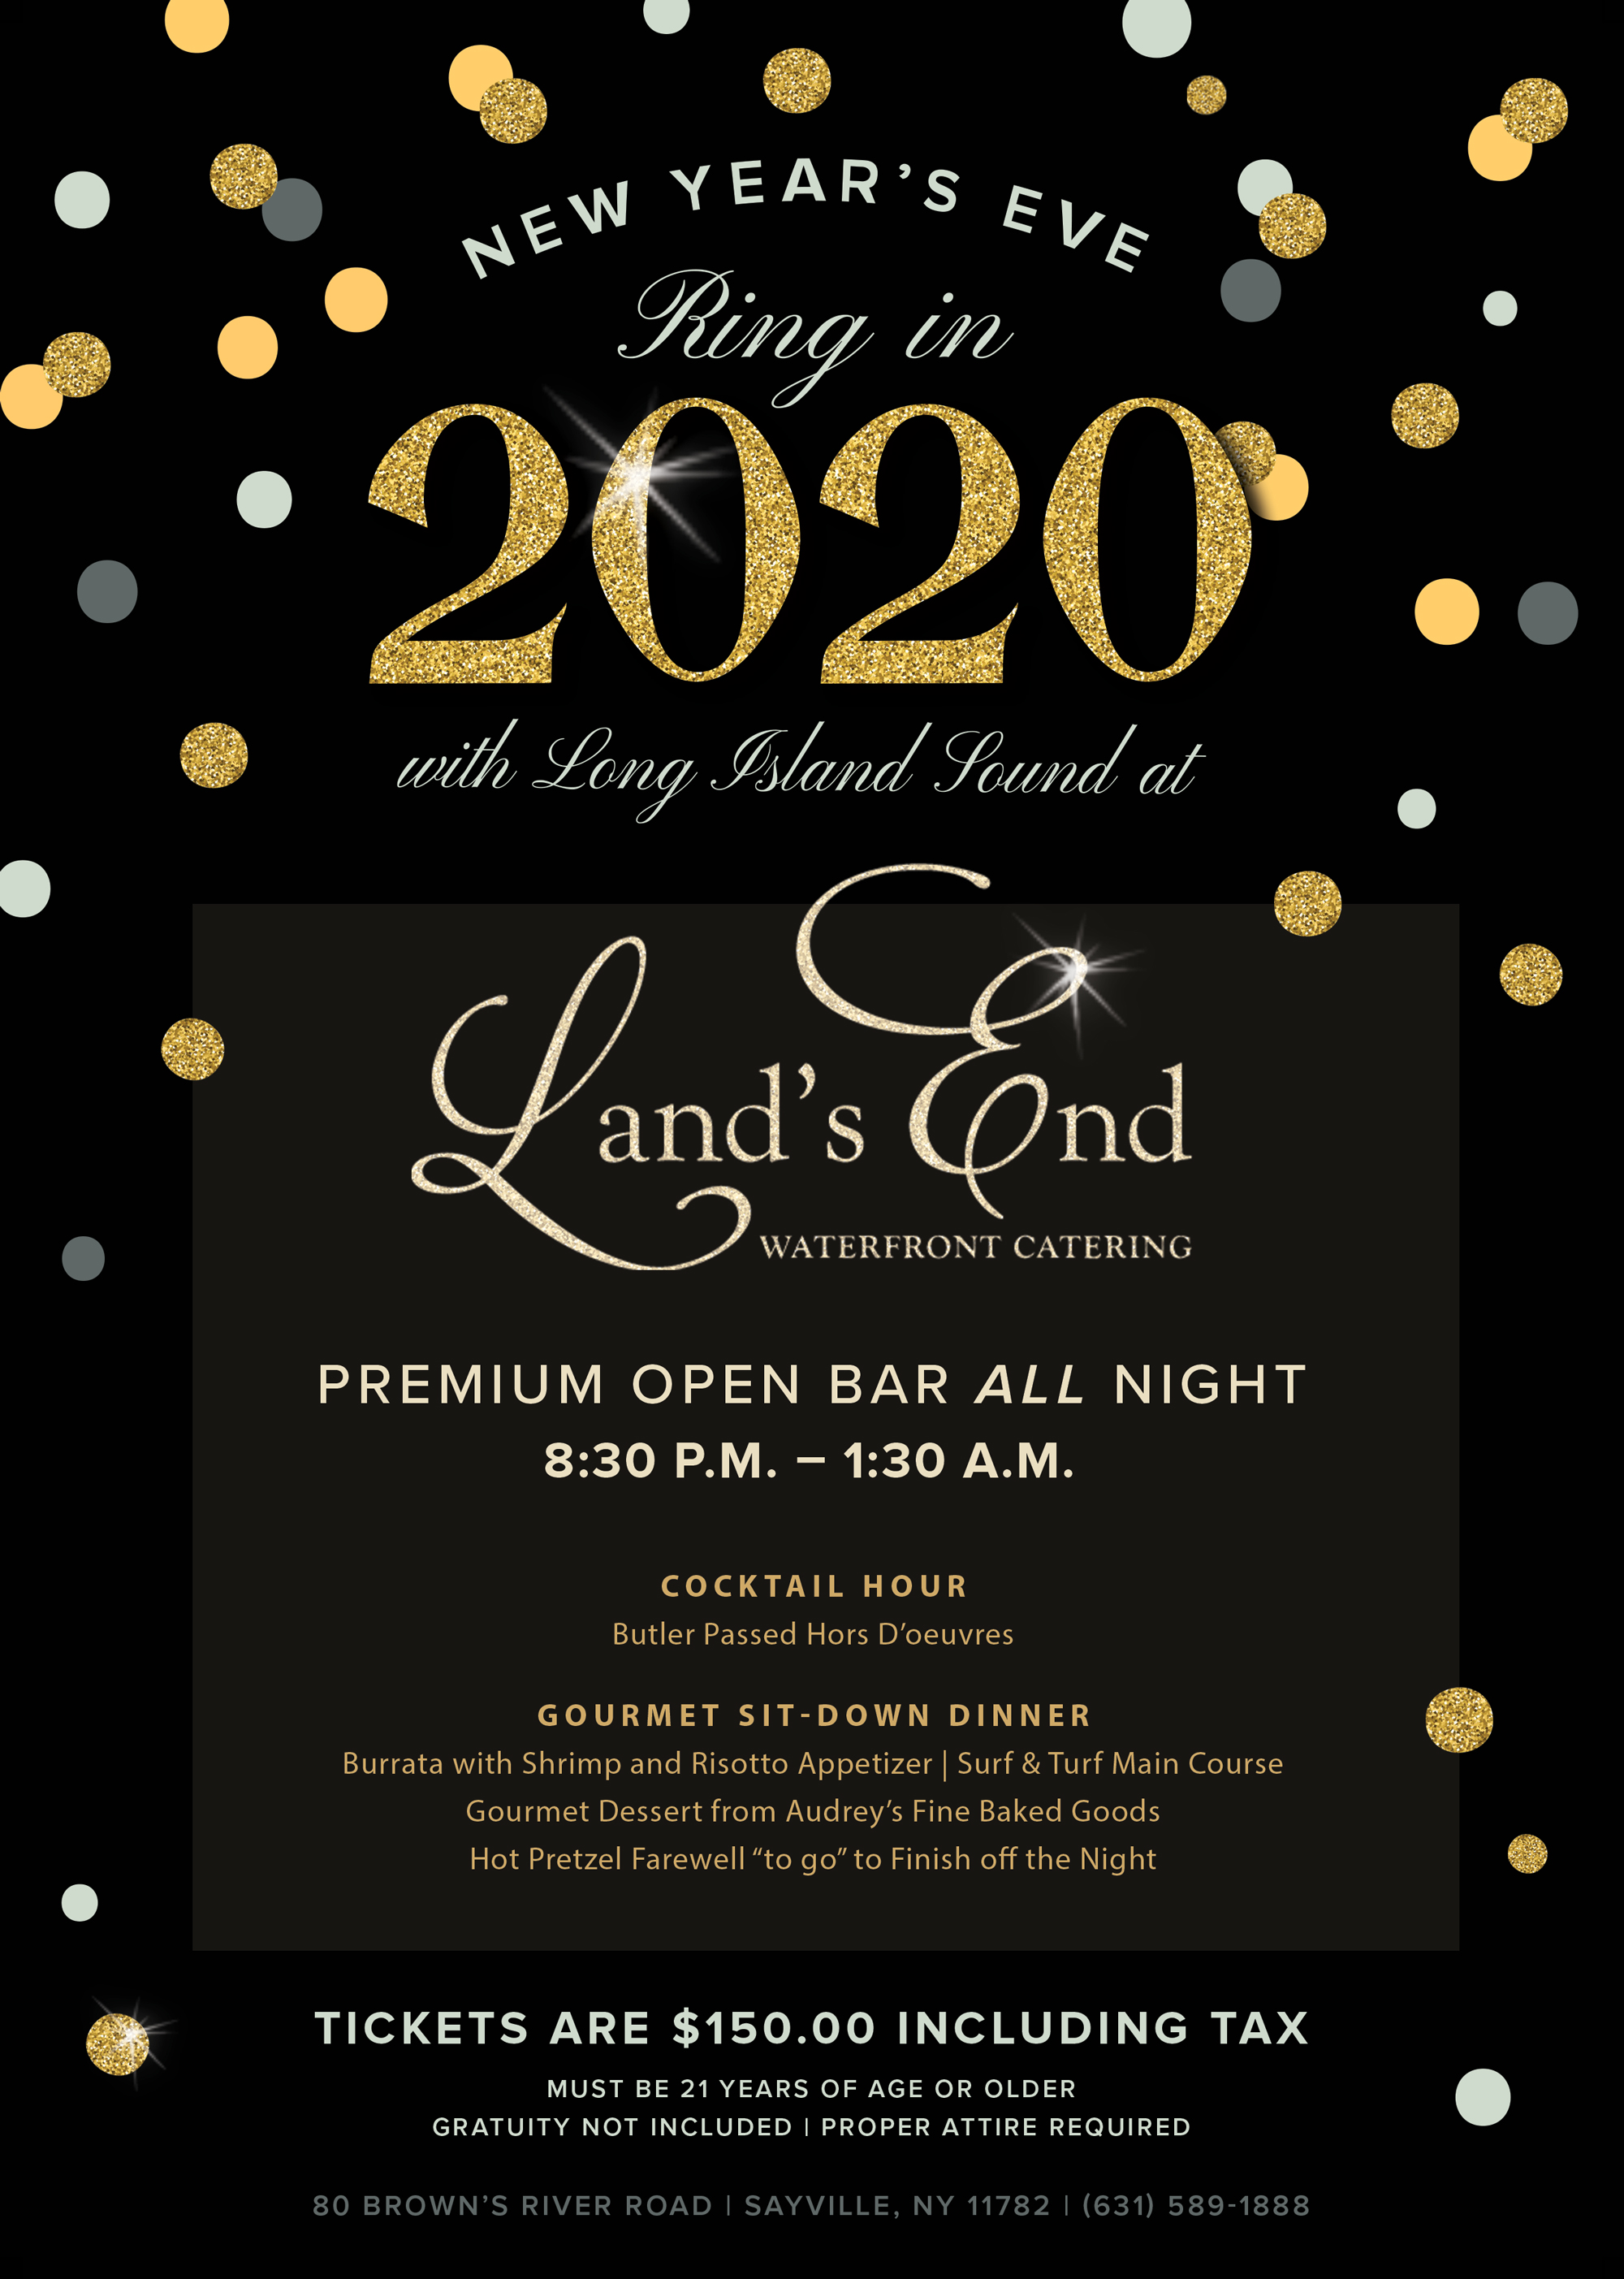 Sayville Fall Festival 2020.Land S End Weddings News And Events